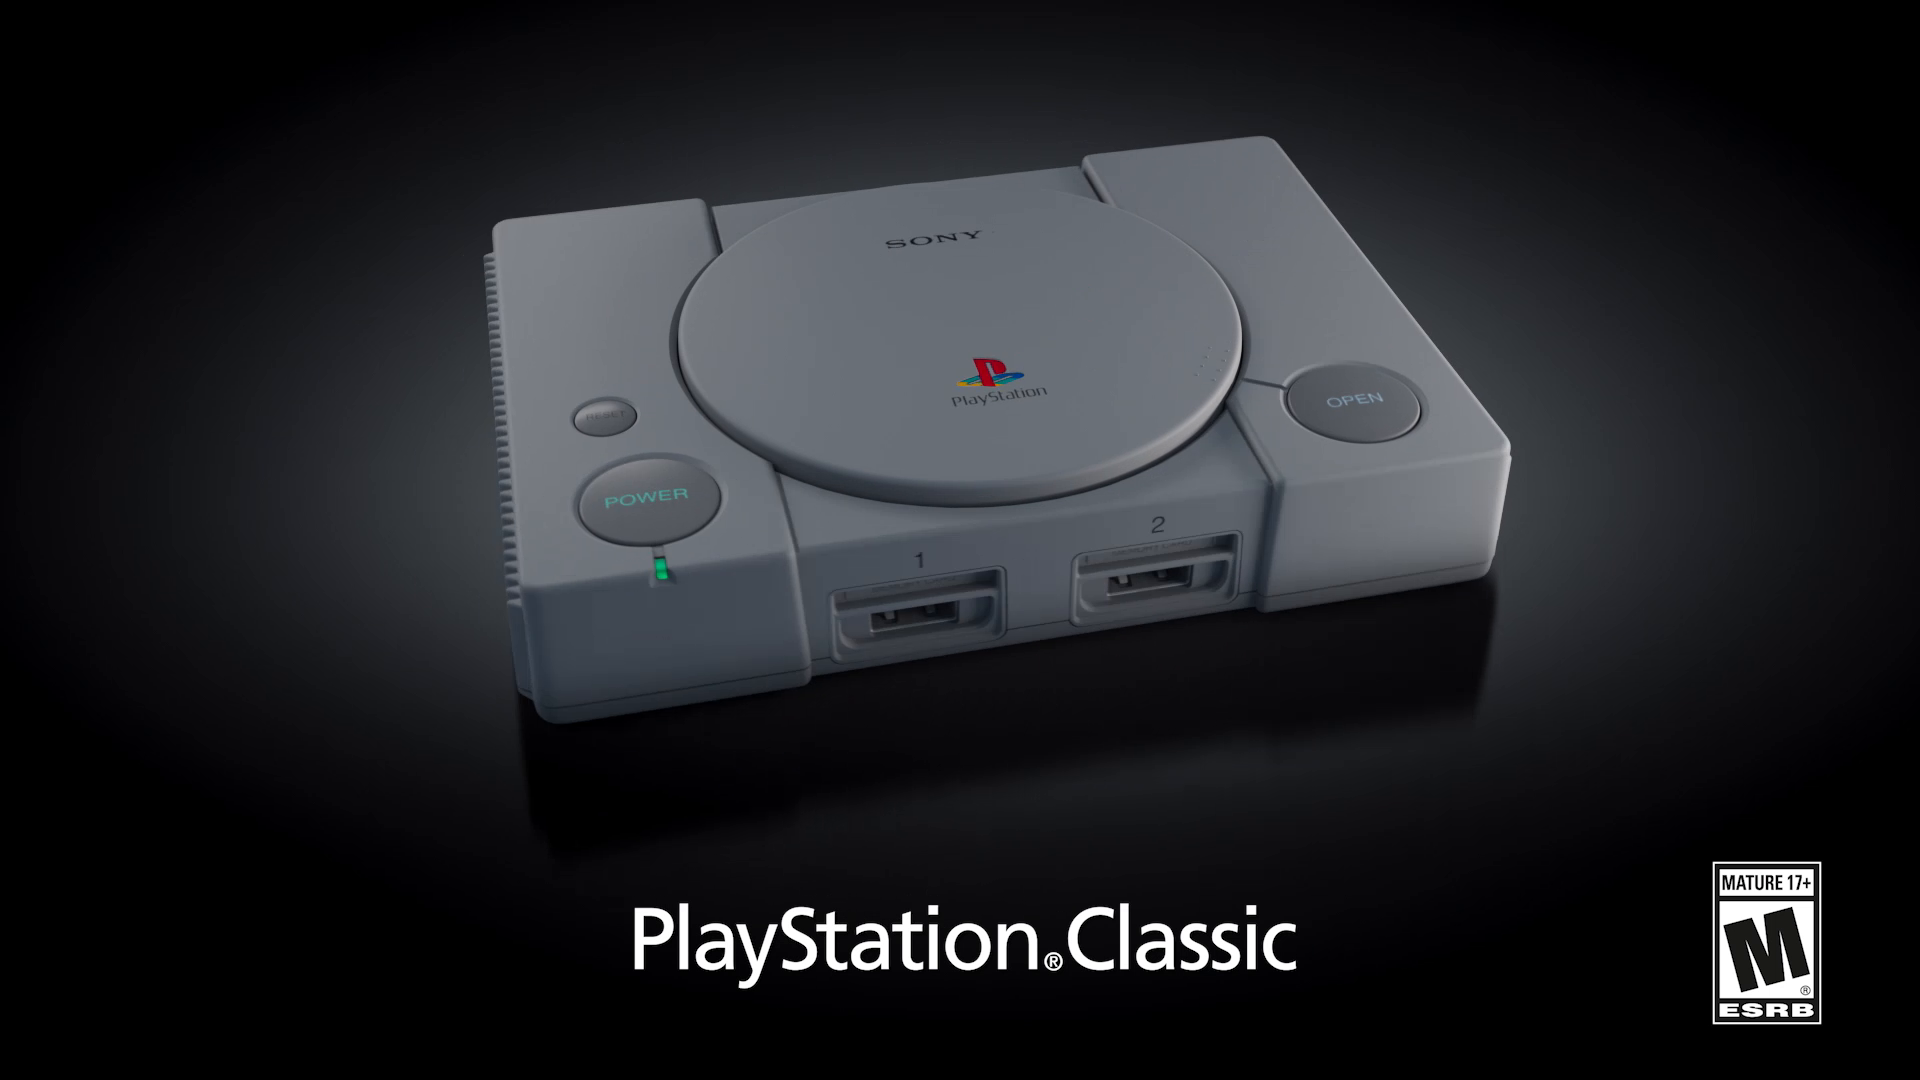 Ps1 classics on ps4 | Why aren't PSOne Classics on the PS4 yet